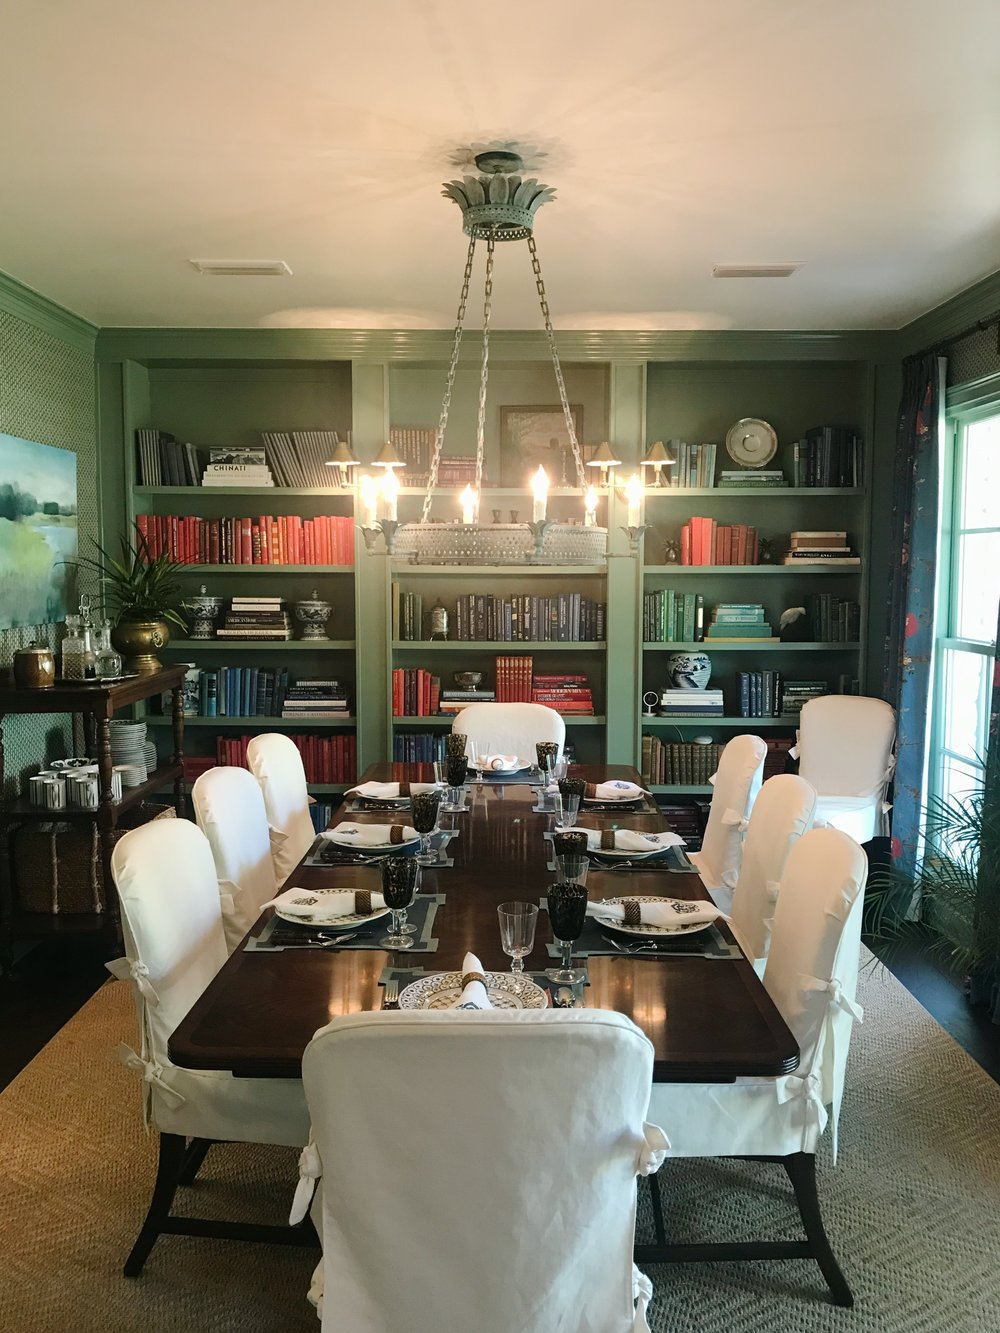 Avery Cox Design Blog: Southern Living 2018 Austin Idea House by Meredith Ellis, Green Dining Room